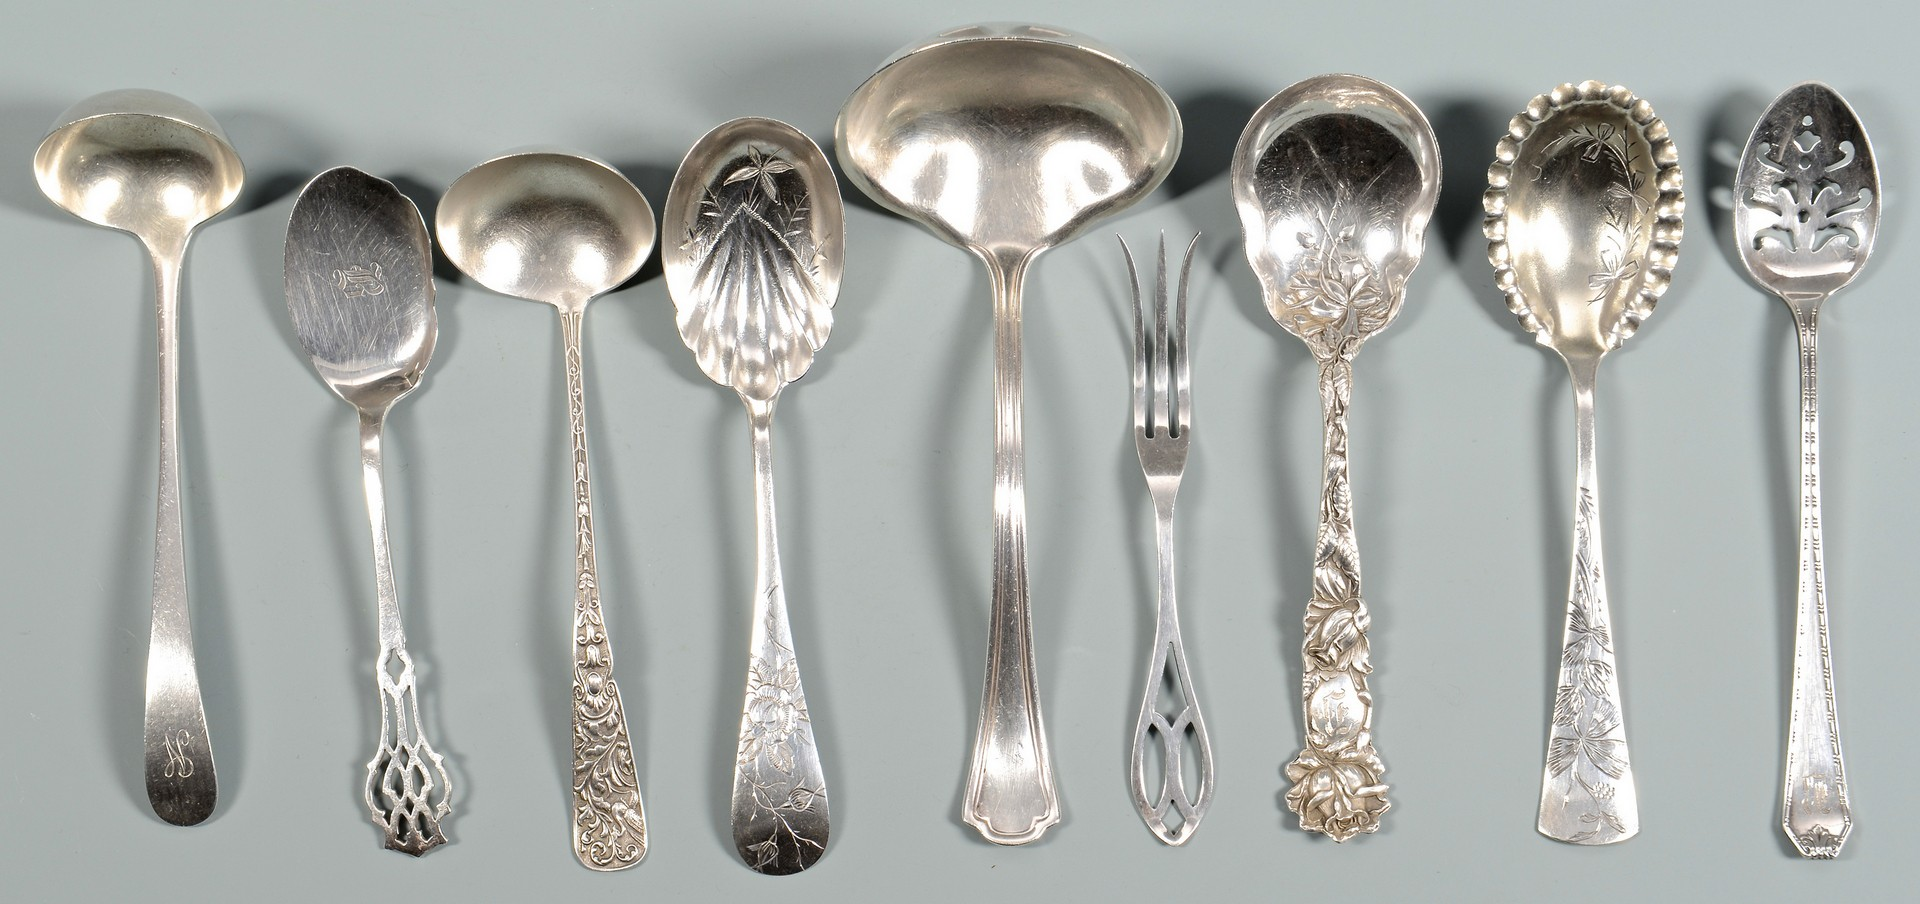 Lot 820: 29 pieces coin and sterling flatware